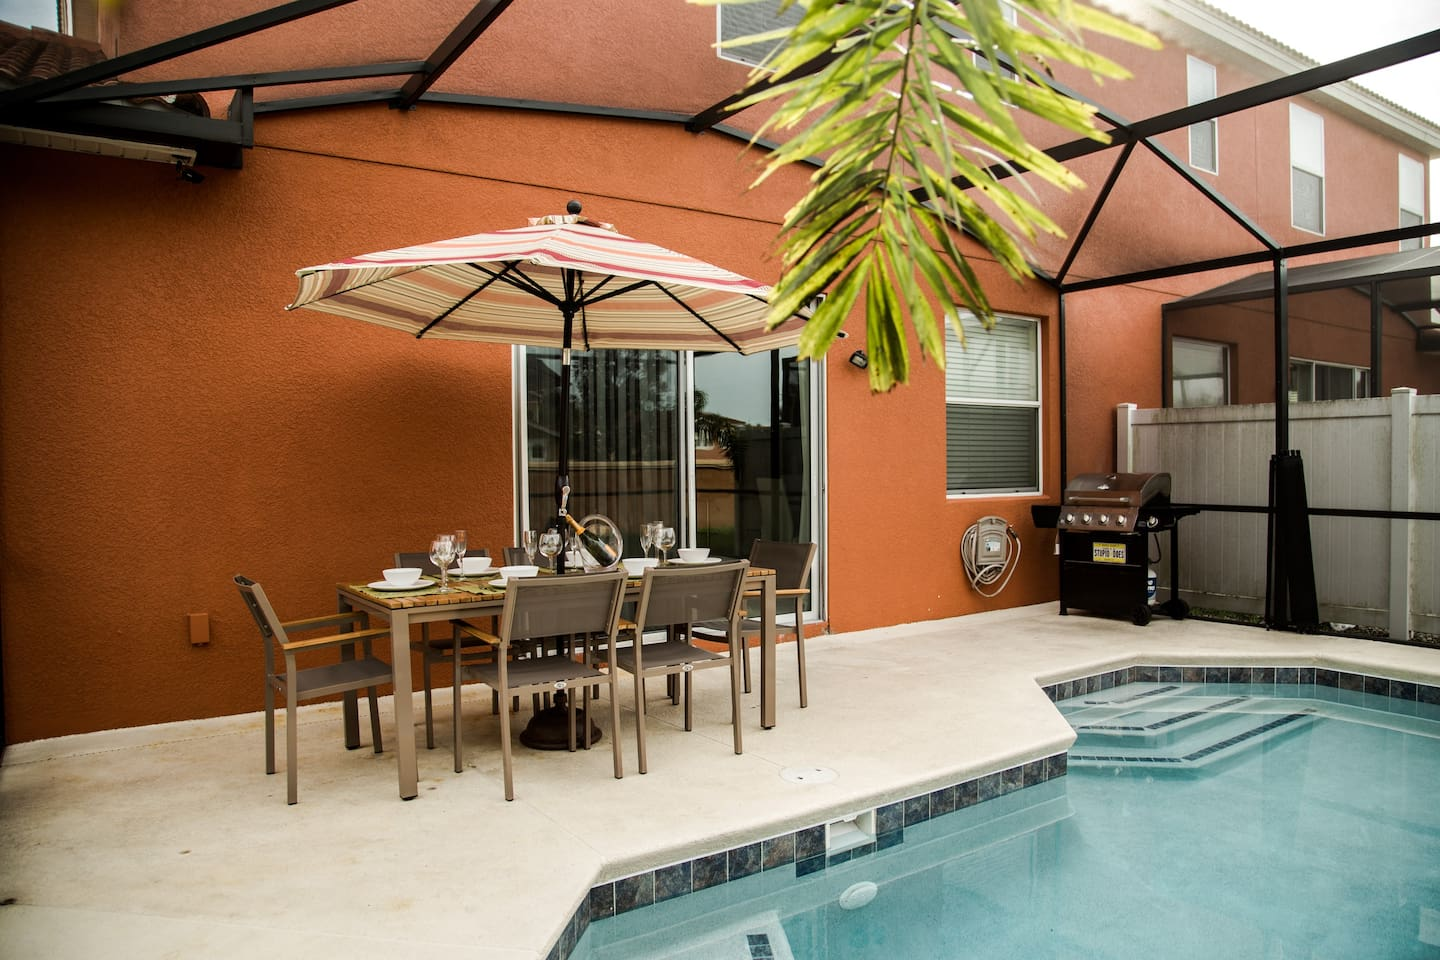 Gorgeous 4BD Townhouse Near Disney - Townhouses for Rent in ...